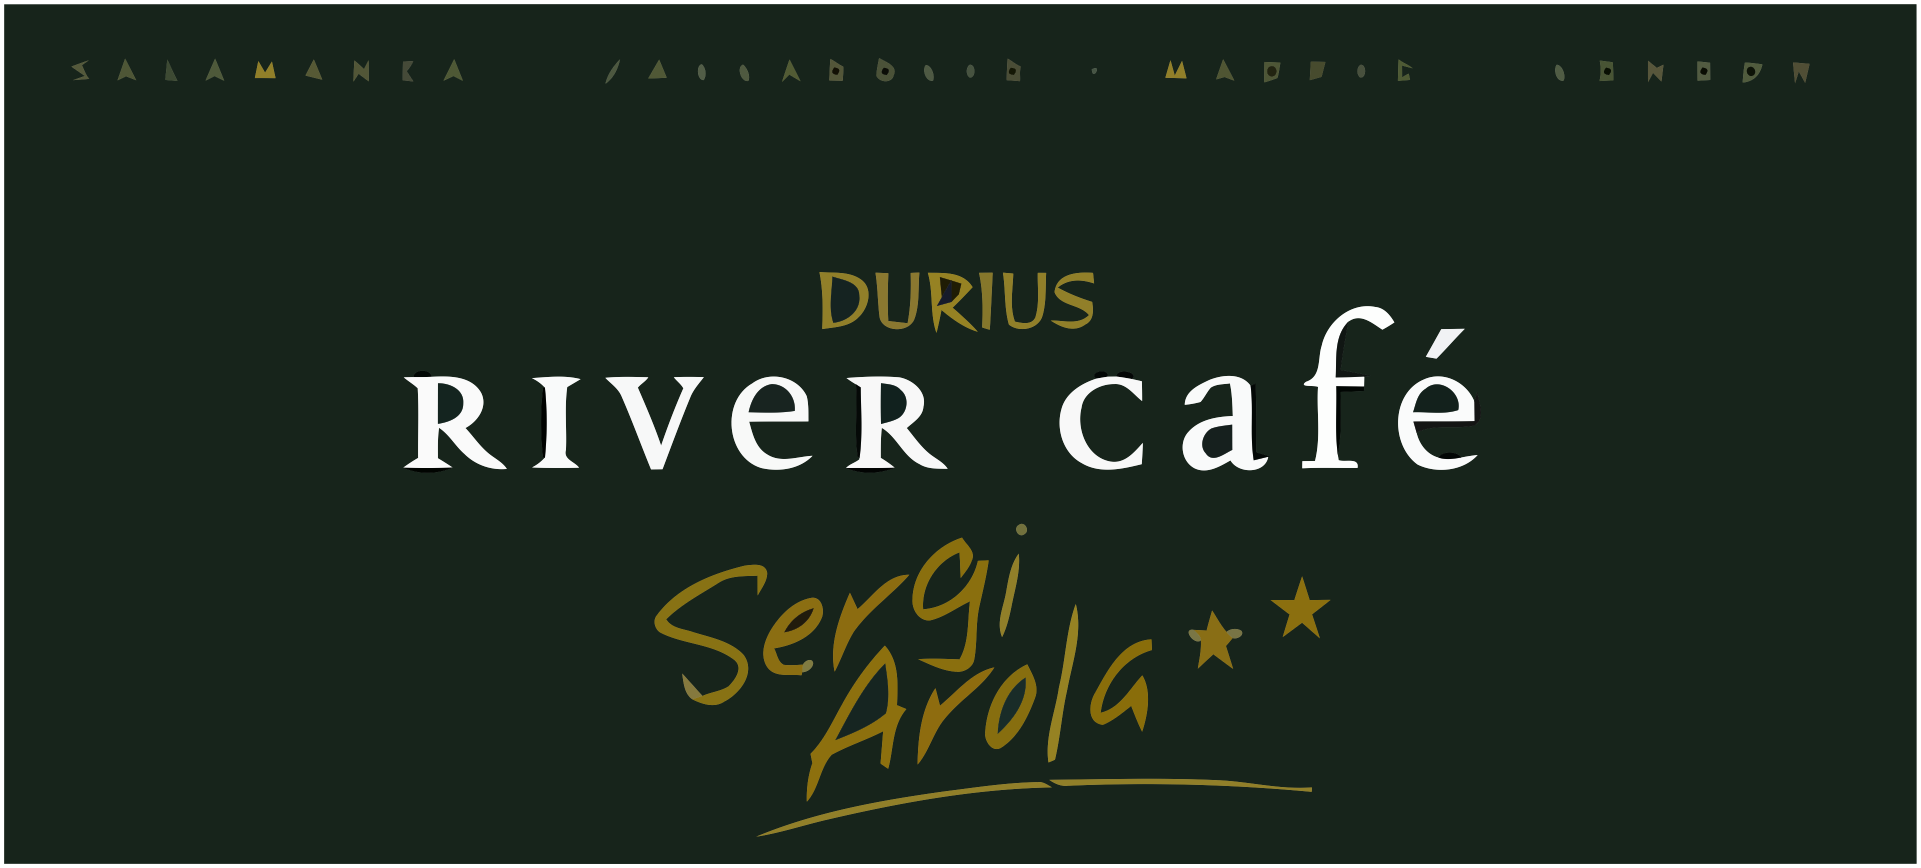 Durius River Café